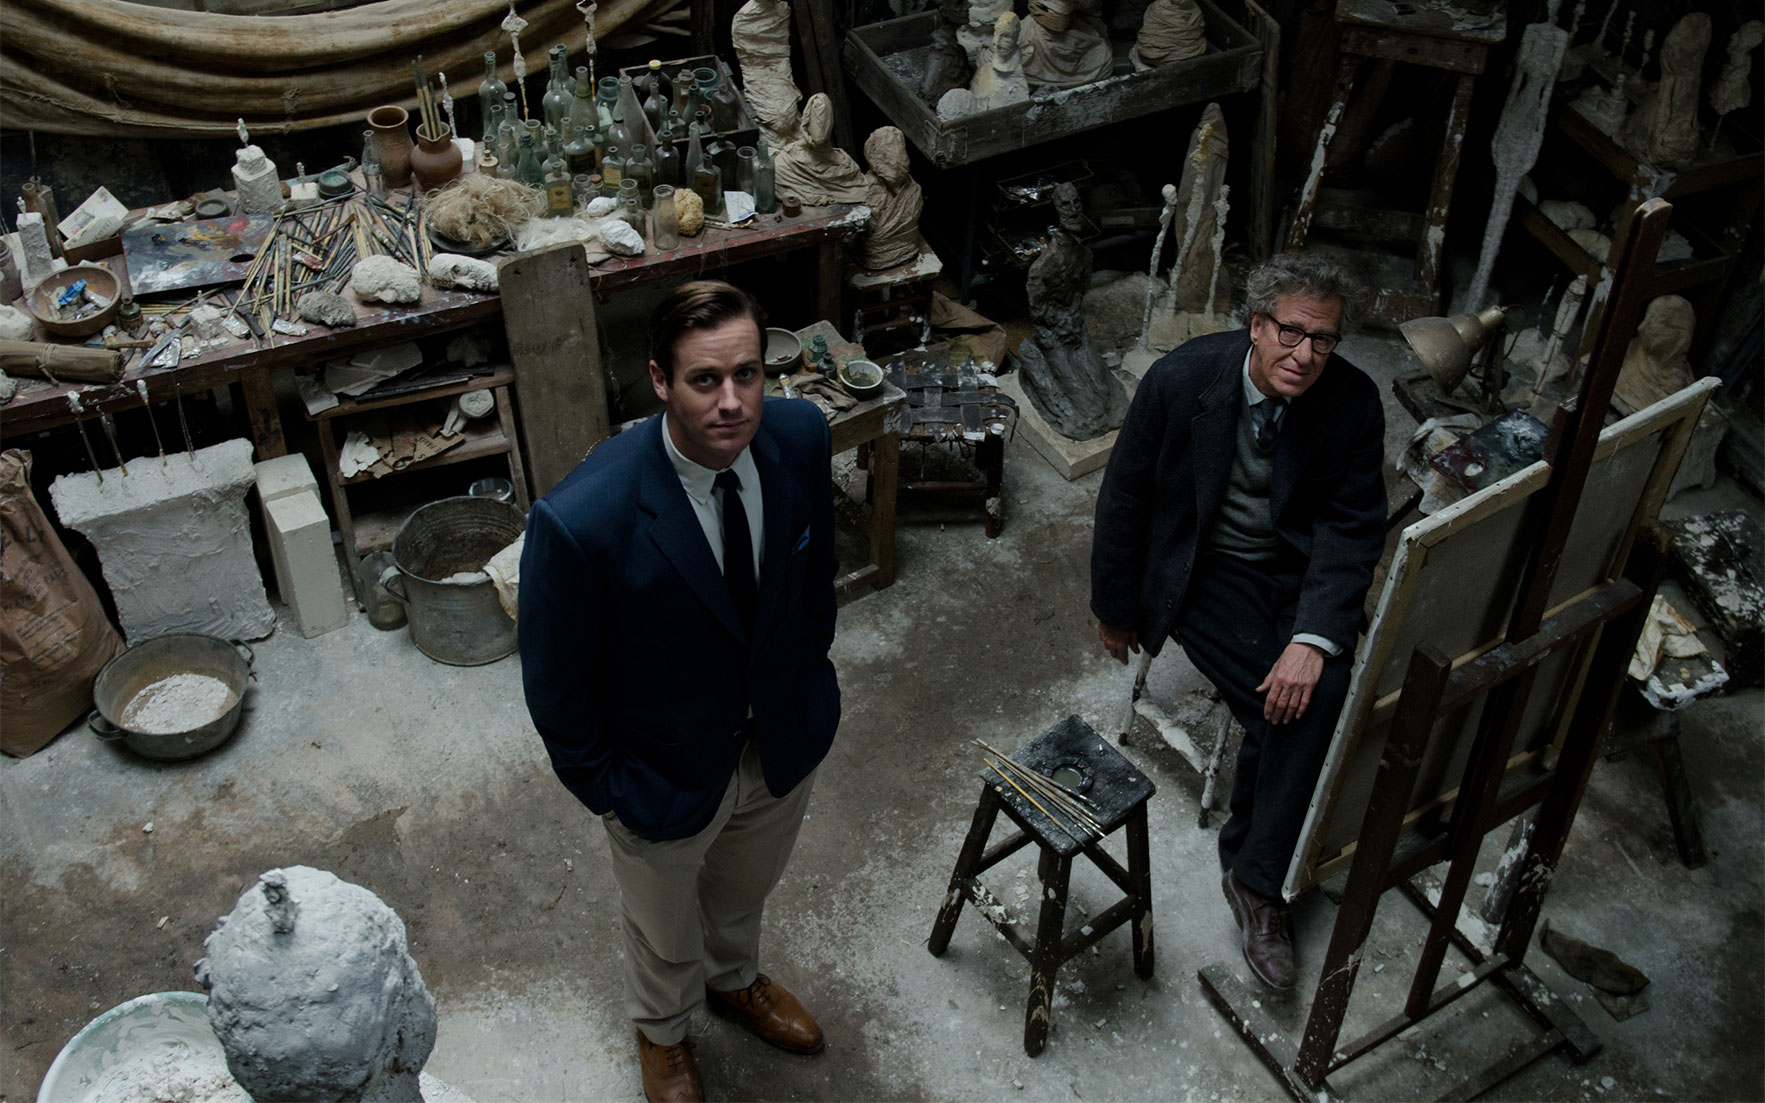 Main image James Lord (Arnie Hammer) and Alberto Giacometti (Geoffrey Rush) in the artist's Paris studio, recreated in London by production designer James Merifield. Credit Parisa